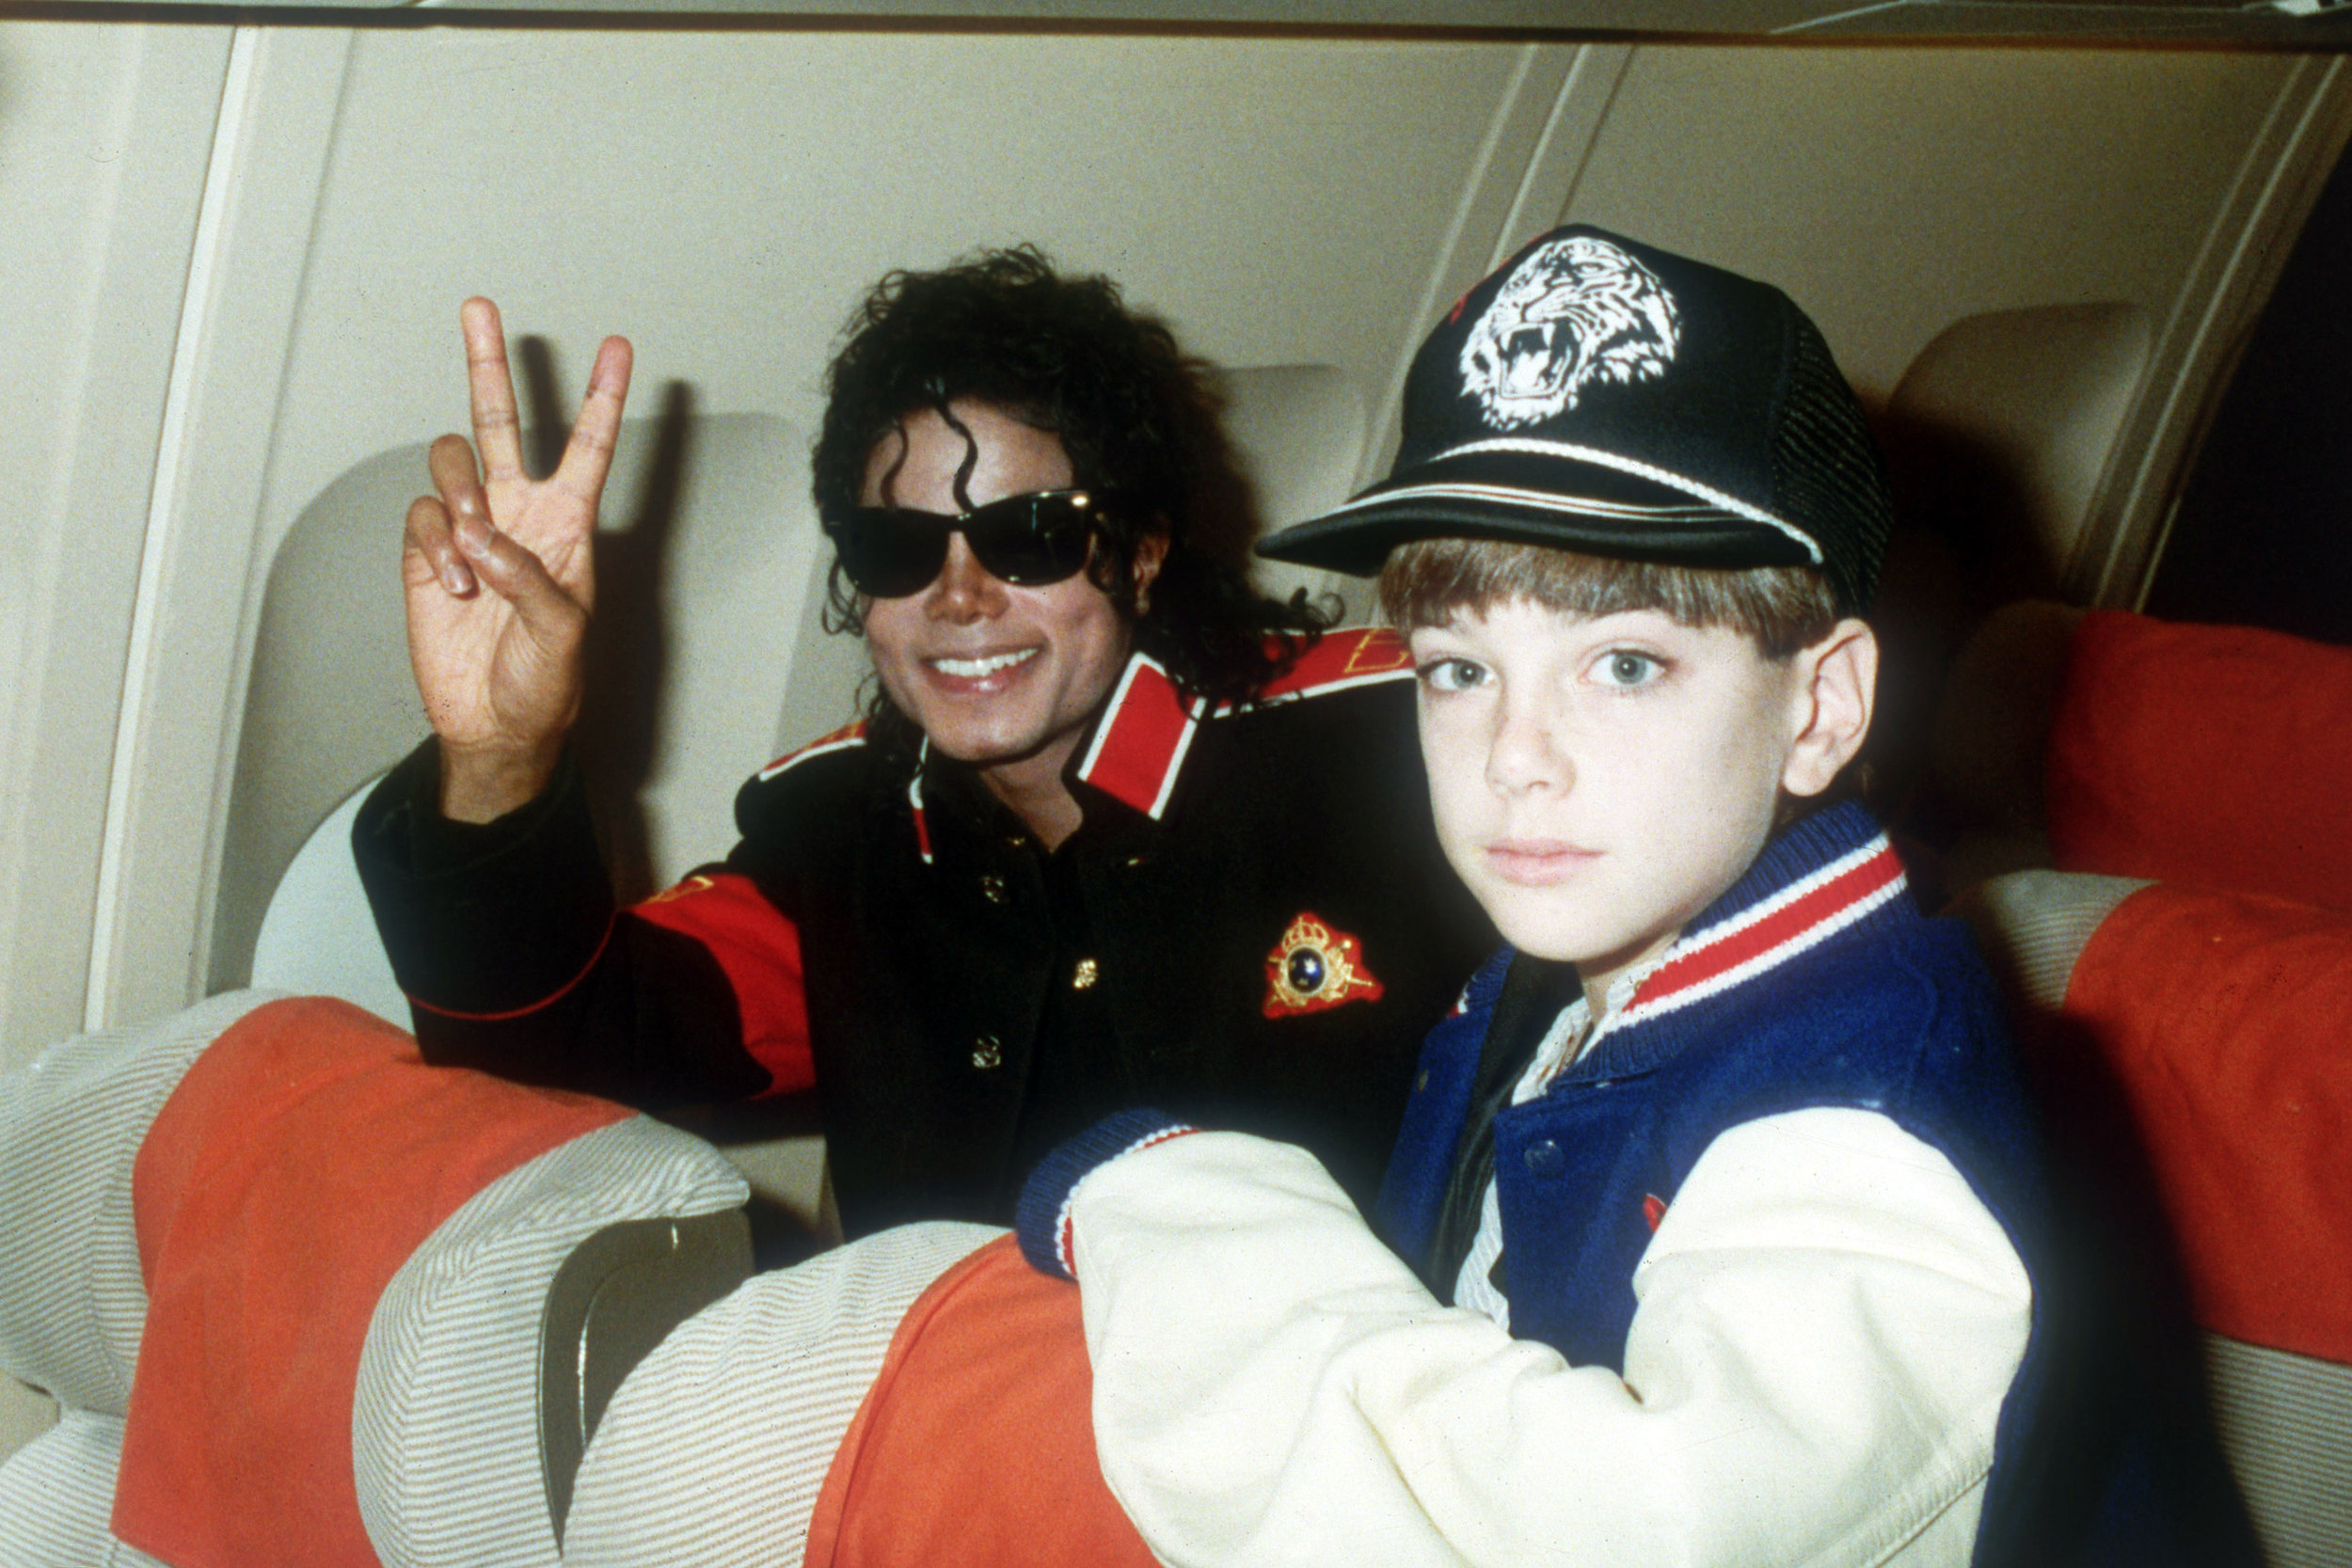 Michael Jackson with 10-year-old James Safechuck in the 1980's